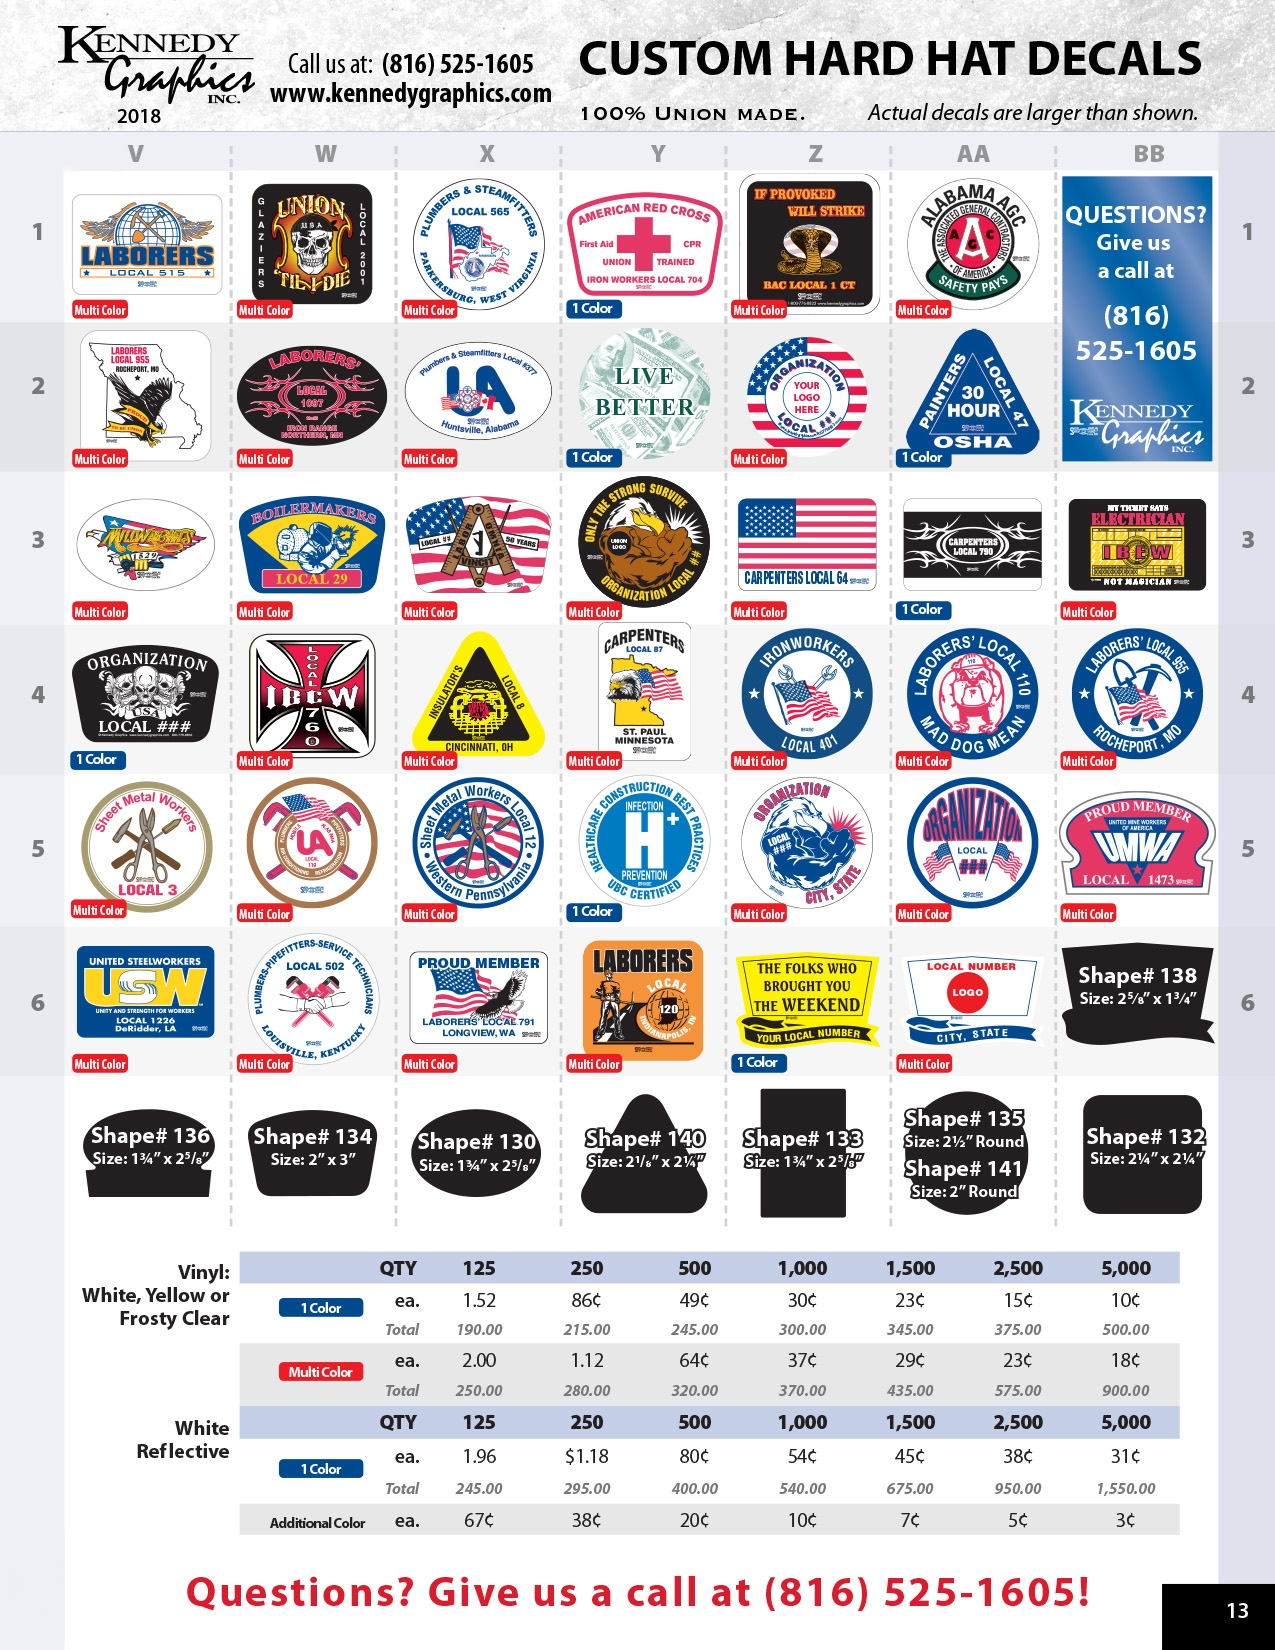 Kennedy Graphics Custom Hard Hat Decals 2018 catalog page 13